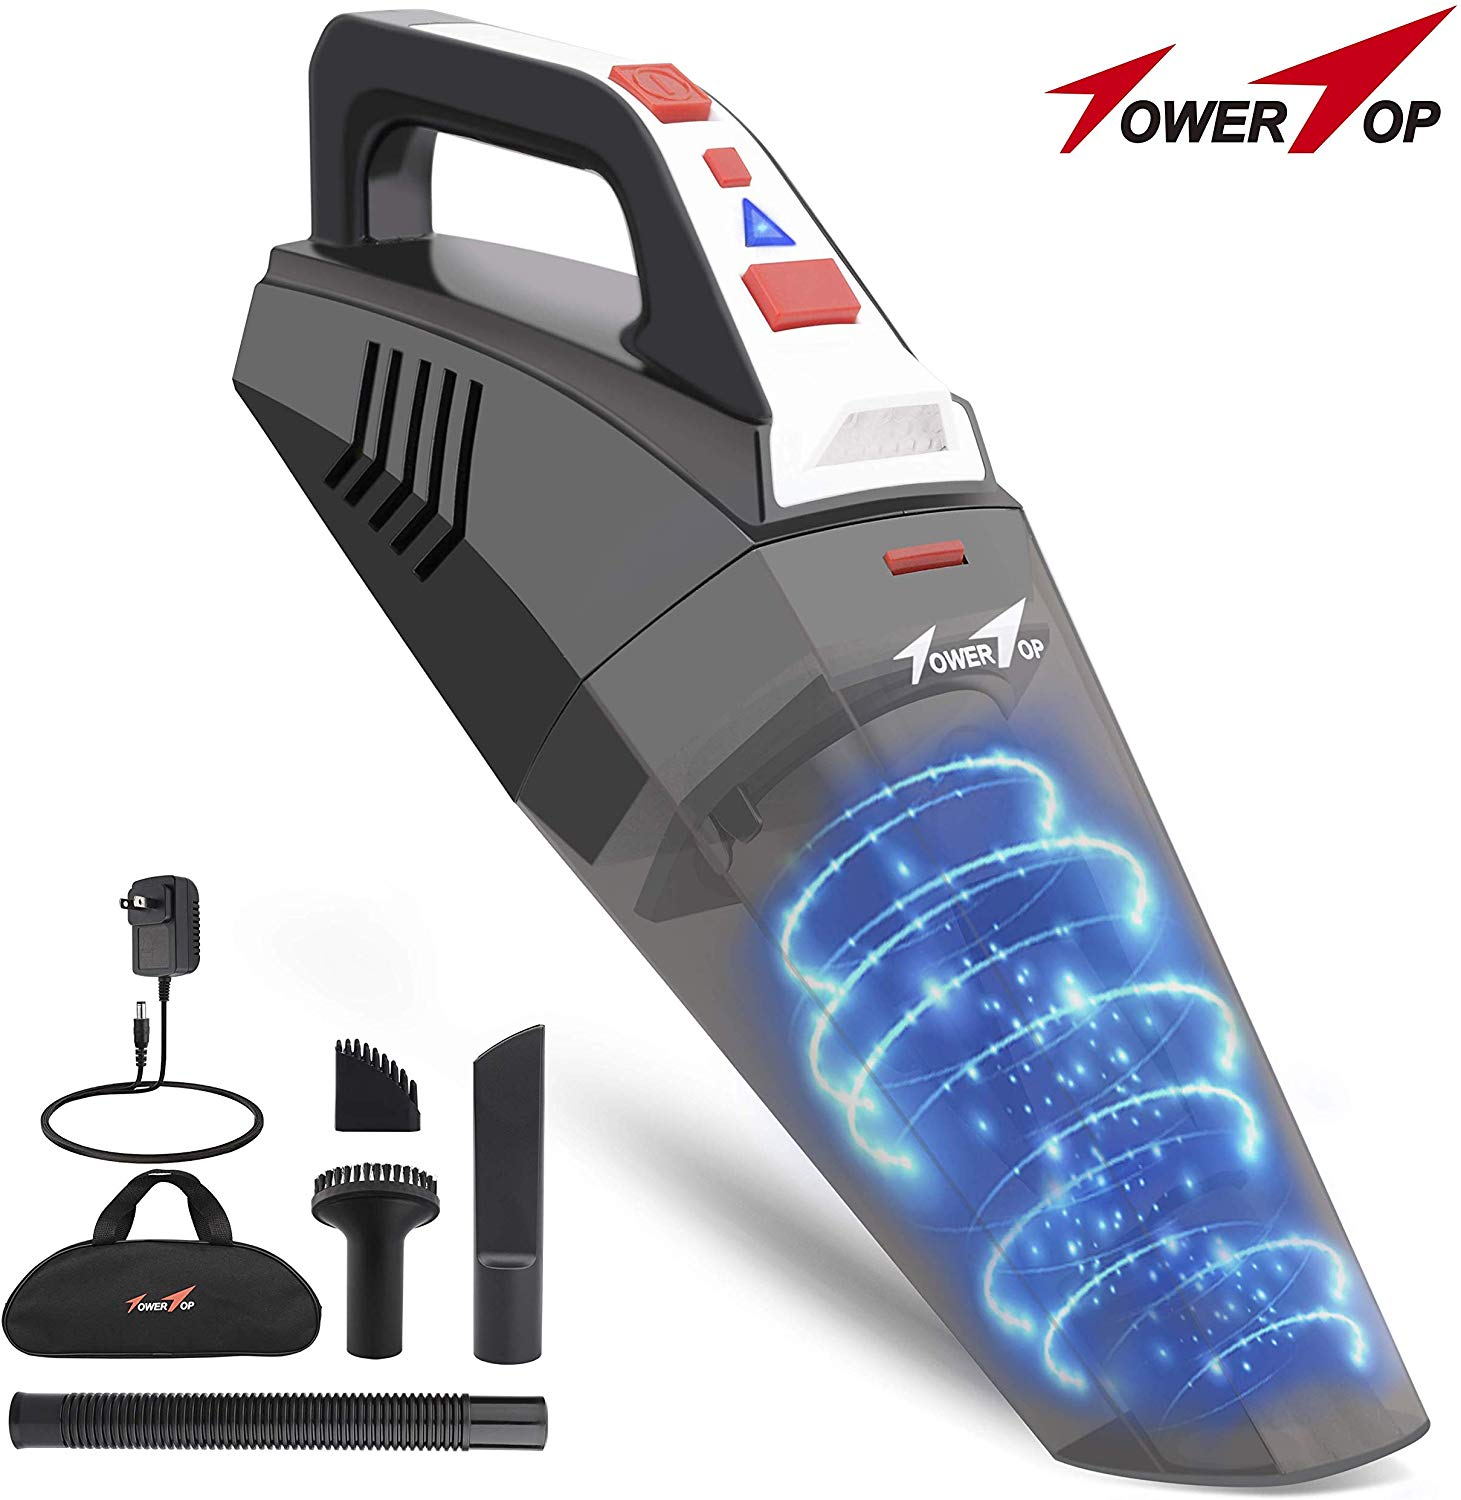 Handheld Vacuum, Cordless Vacuum Cleaner, Portable Rechargeable Vacuum Cleaner Handheld, Lightweight Wet/Dry Car Vacuum Cleaner, 2 LED Light&Stainless Steel Filter for Home and Car